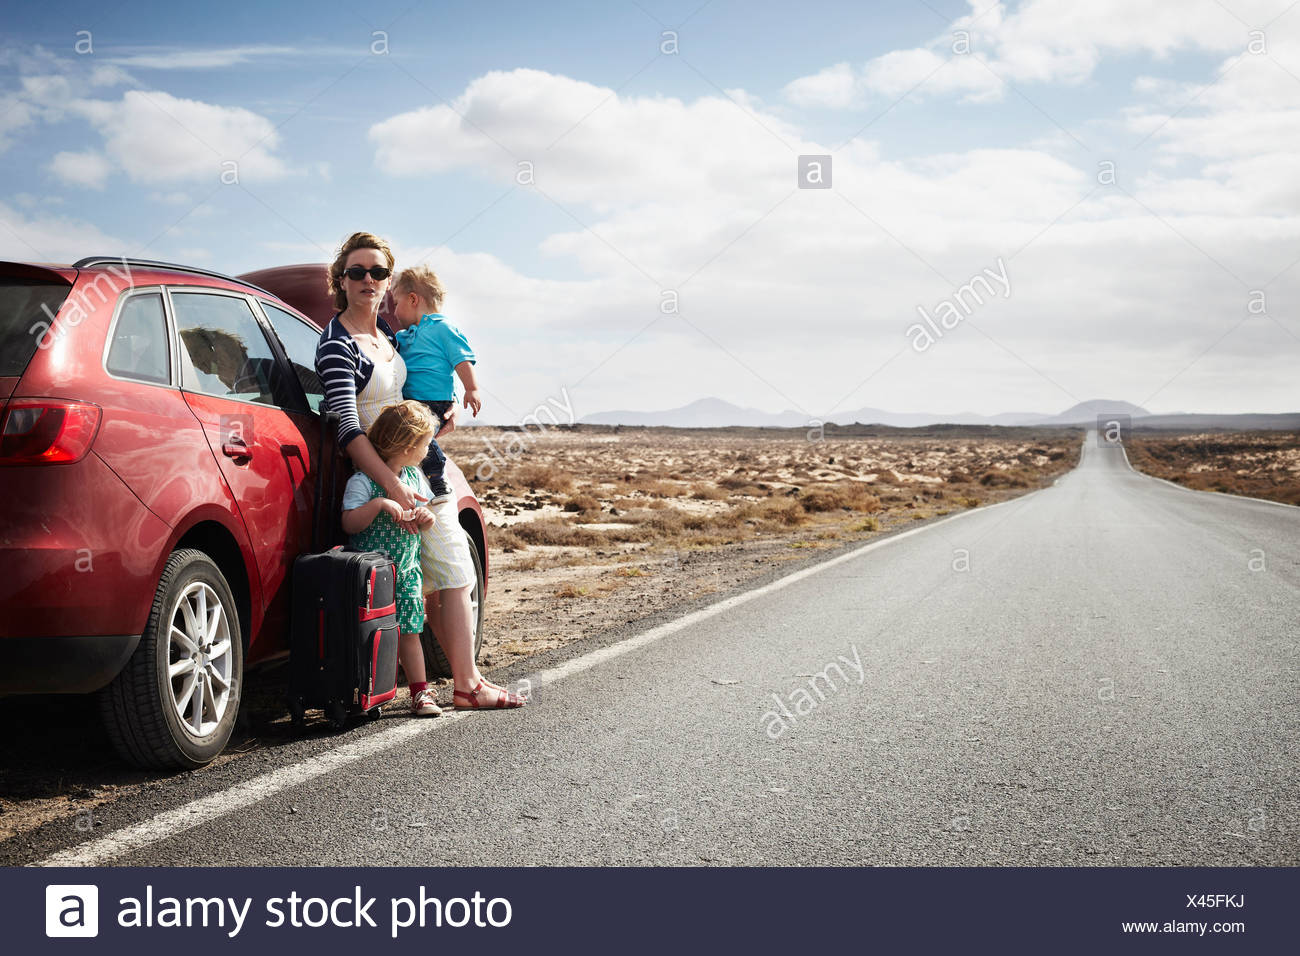 Family standing by broken down car - Stock Image